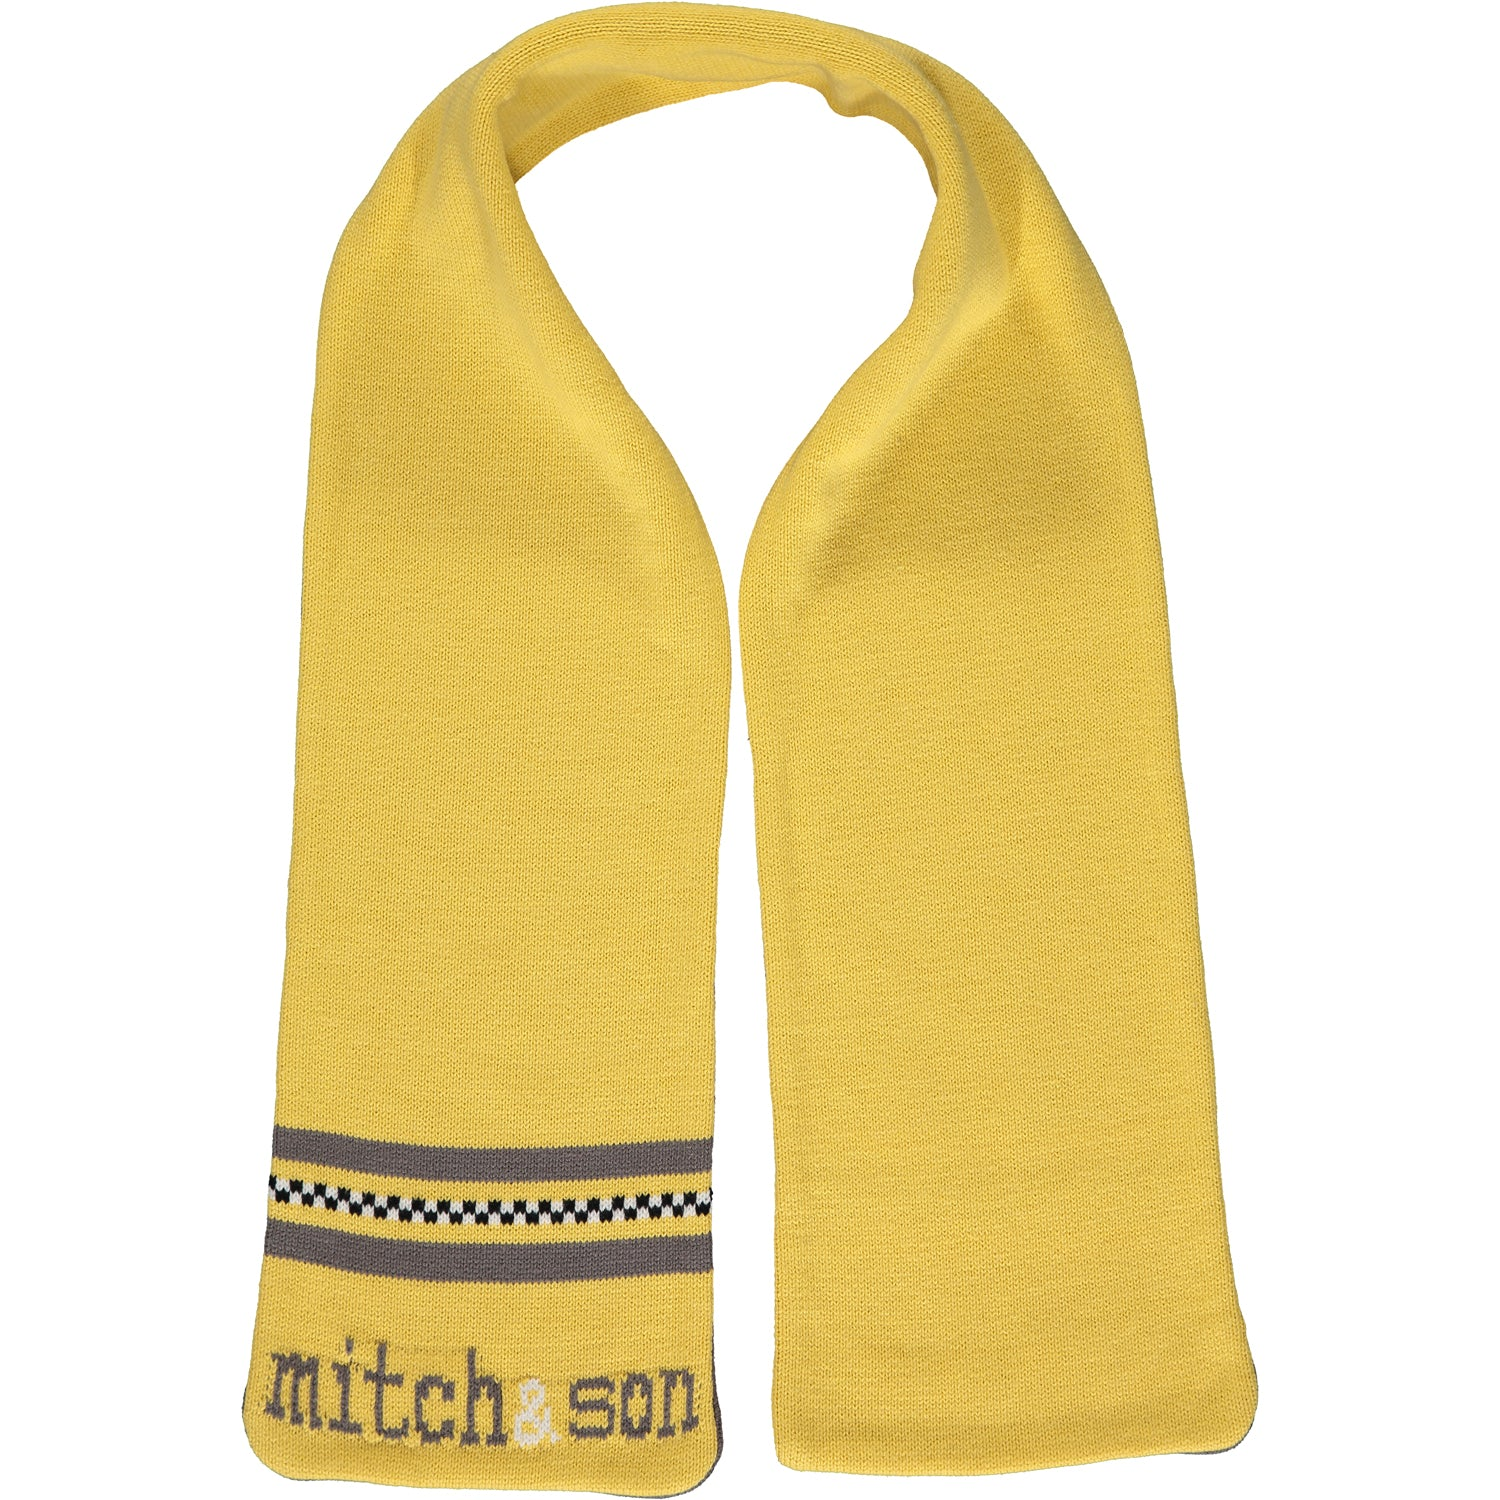 Mitch and Son Reversible taxi Scarf - The Mango Tree